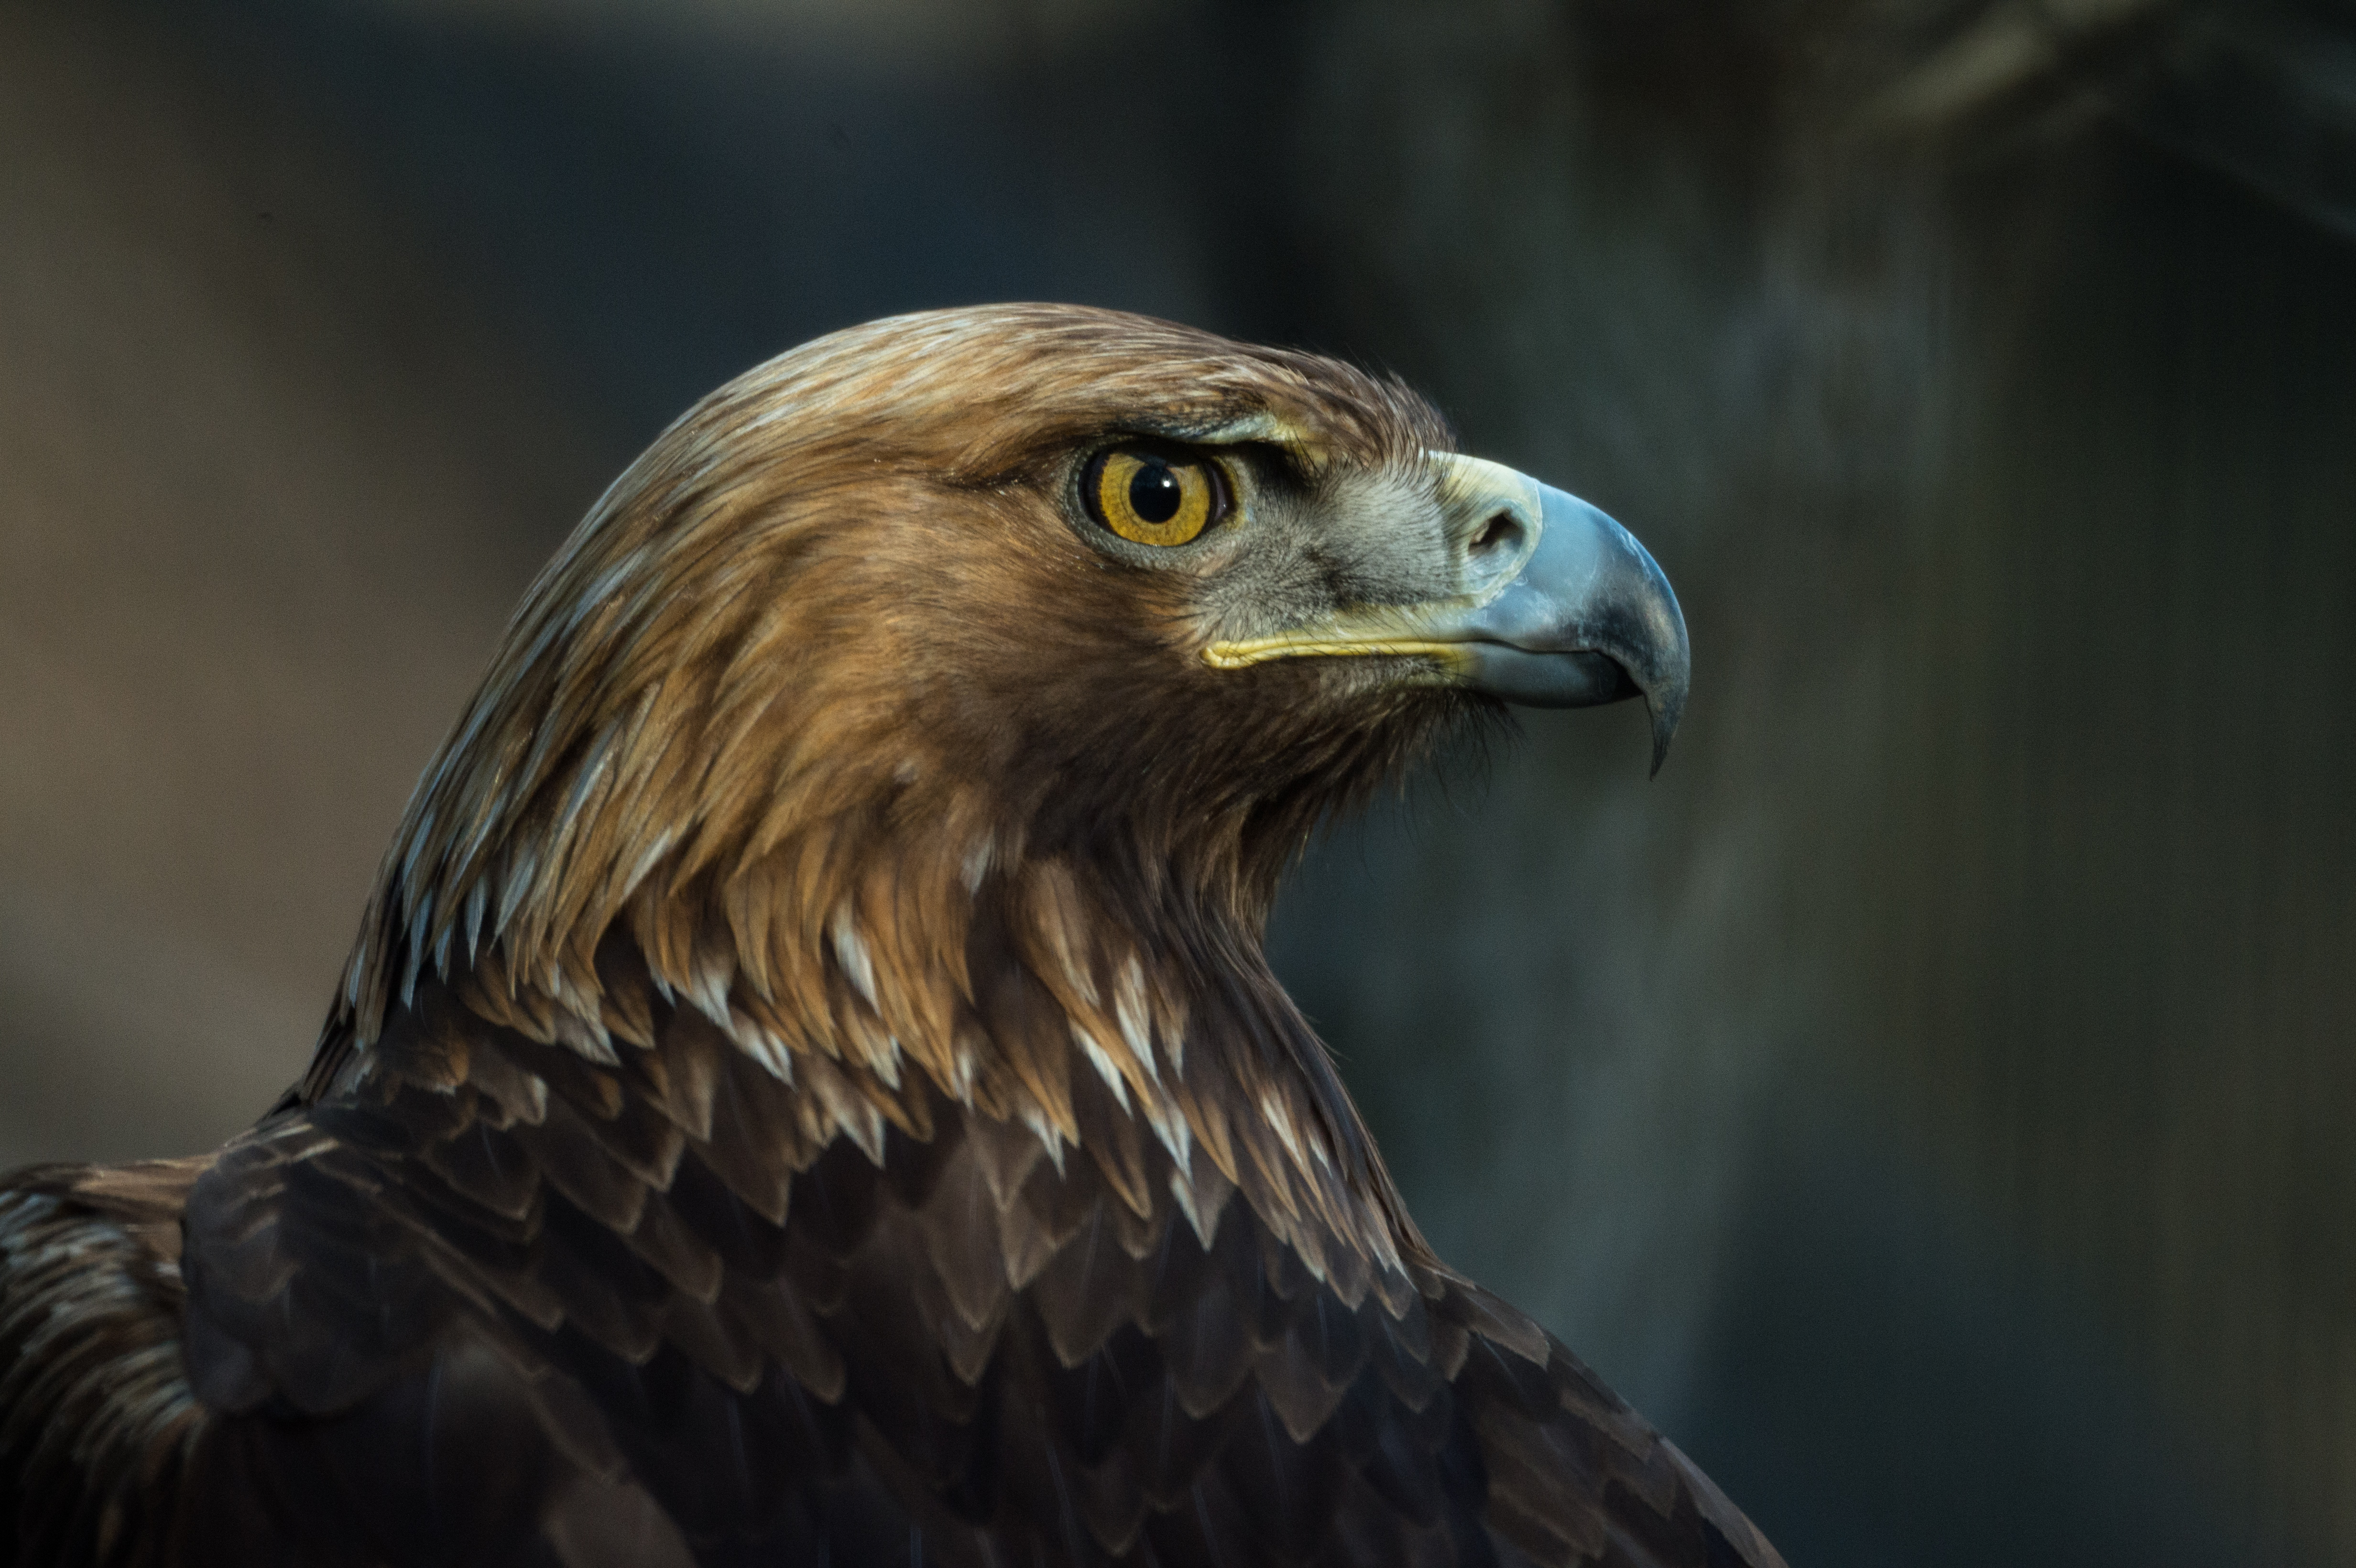 130549 Screensavers and Wallpapers Bird for phone. Download Animals, Bird, Beak, Predator, Sight, Opinion, Eagle pictures for free